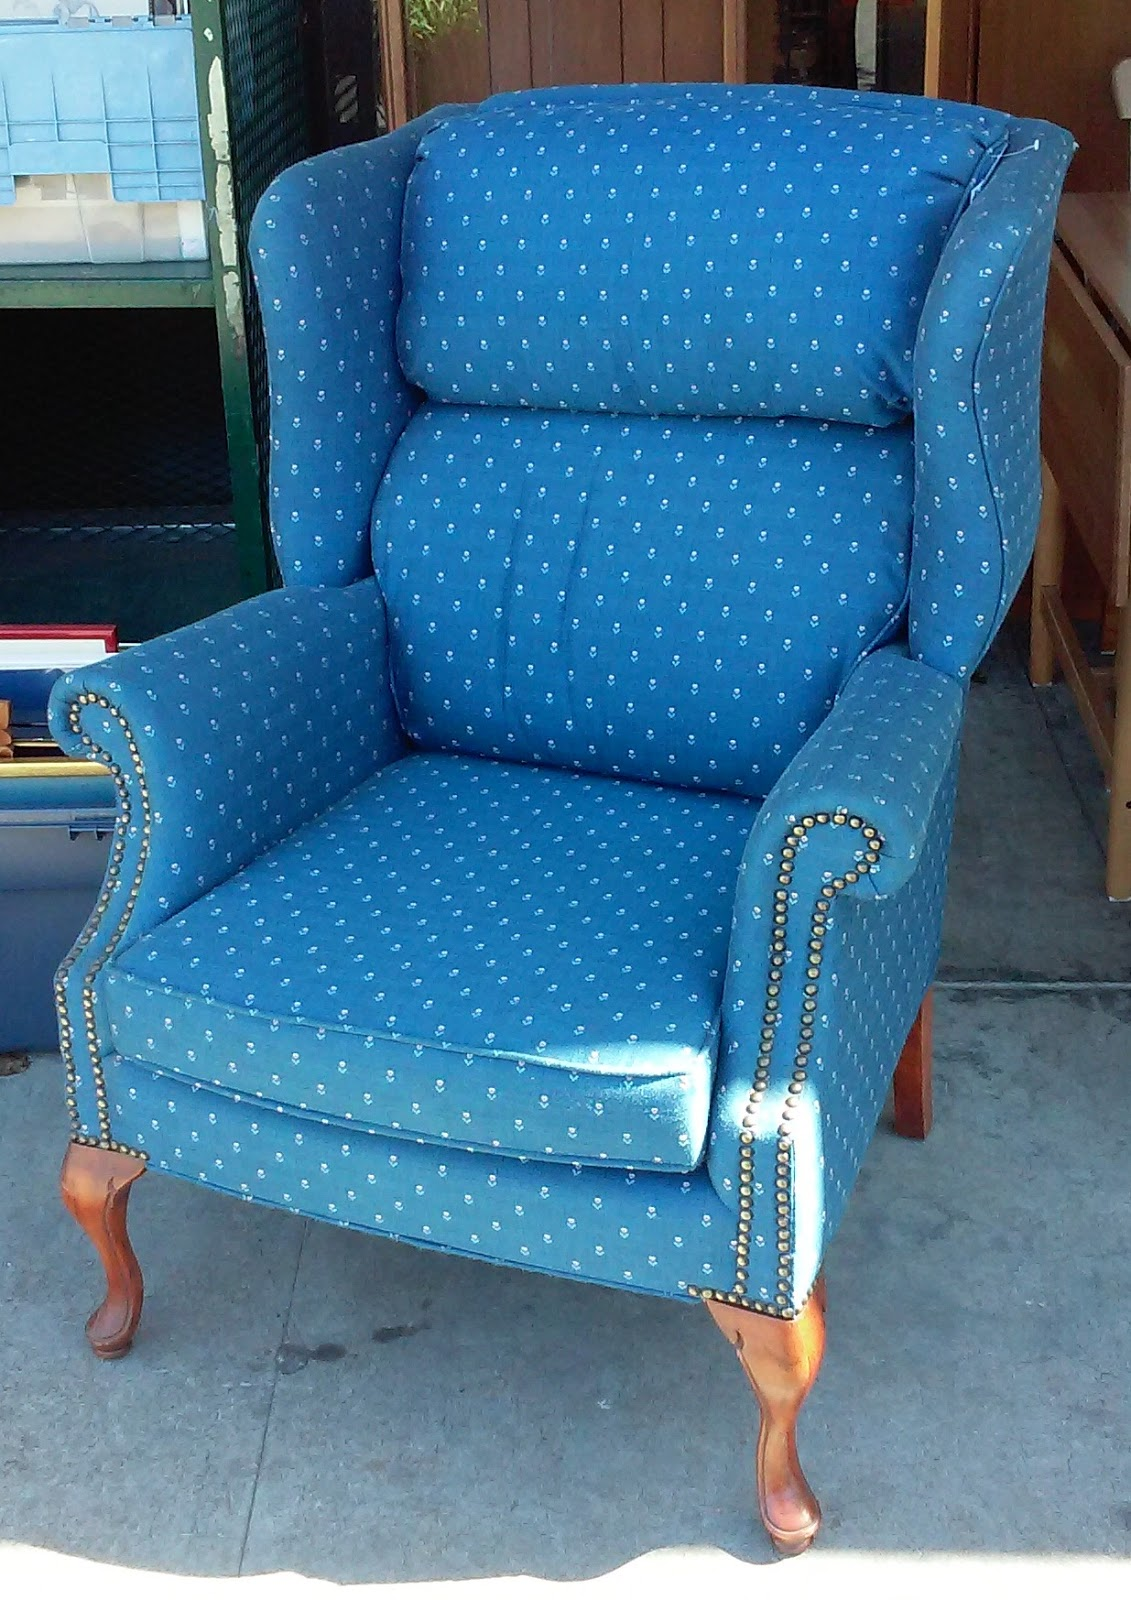 UHURU FURNITURE & COLLECTIBLES: SOLD Sam Moore Wingback Chair - $50